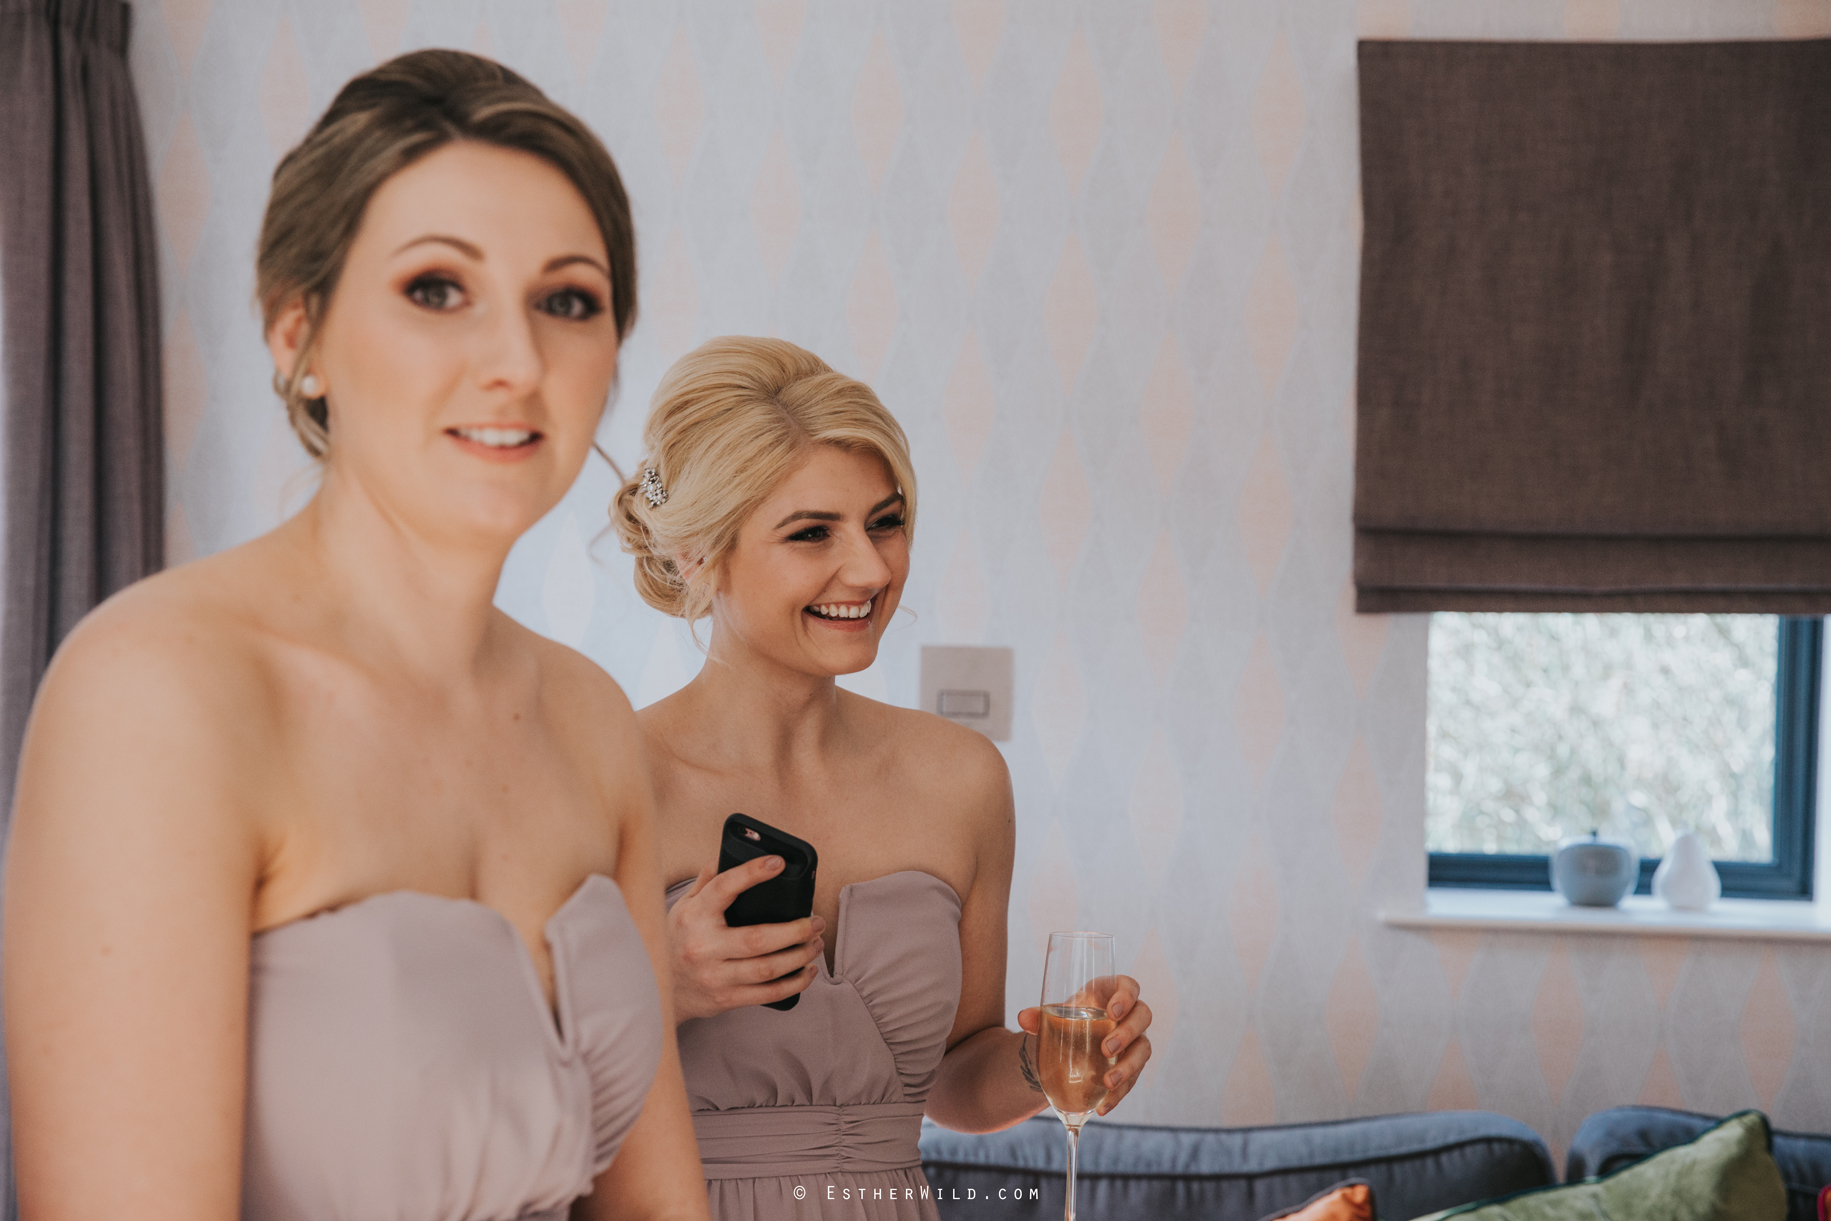 Norfolk_Mead_Hotel_Norwich_Wedding_Copyright_Esther_Wild_Photographer_IMG_0969.jpg